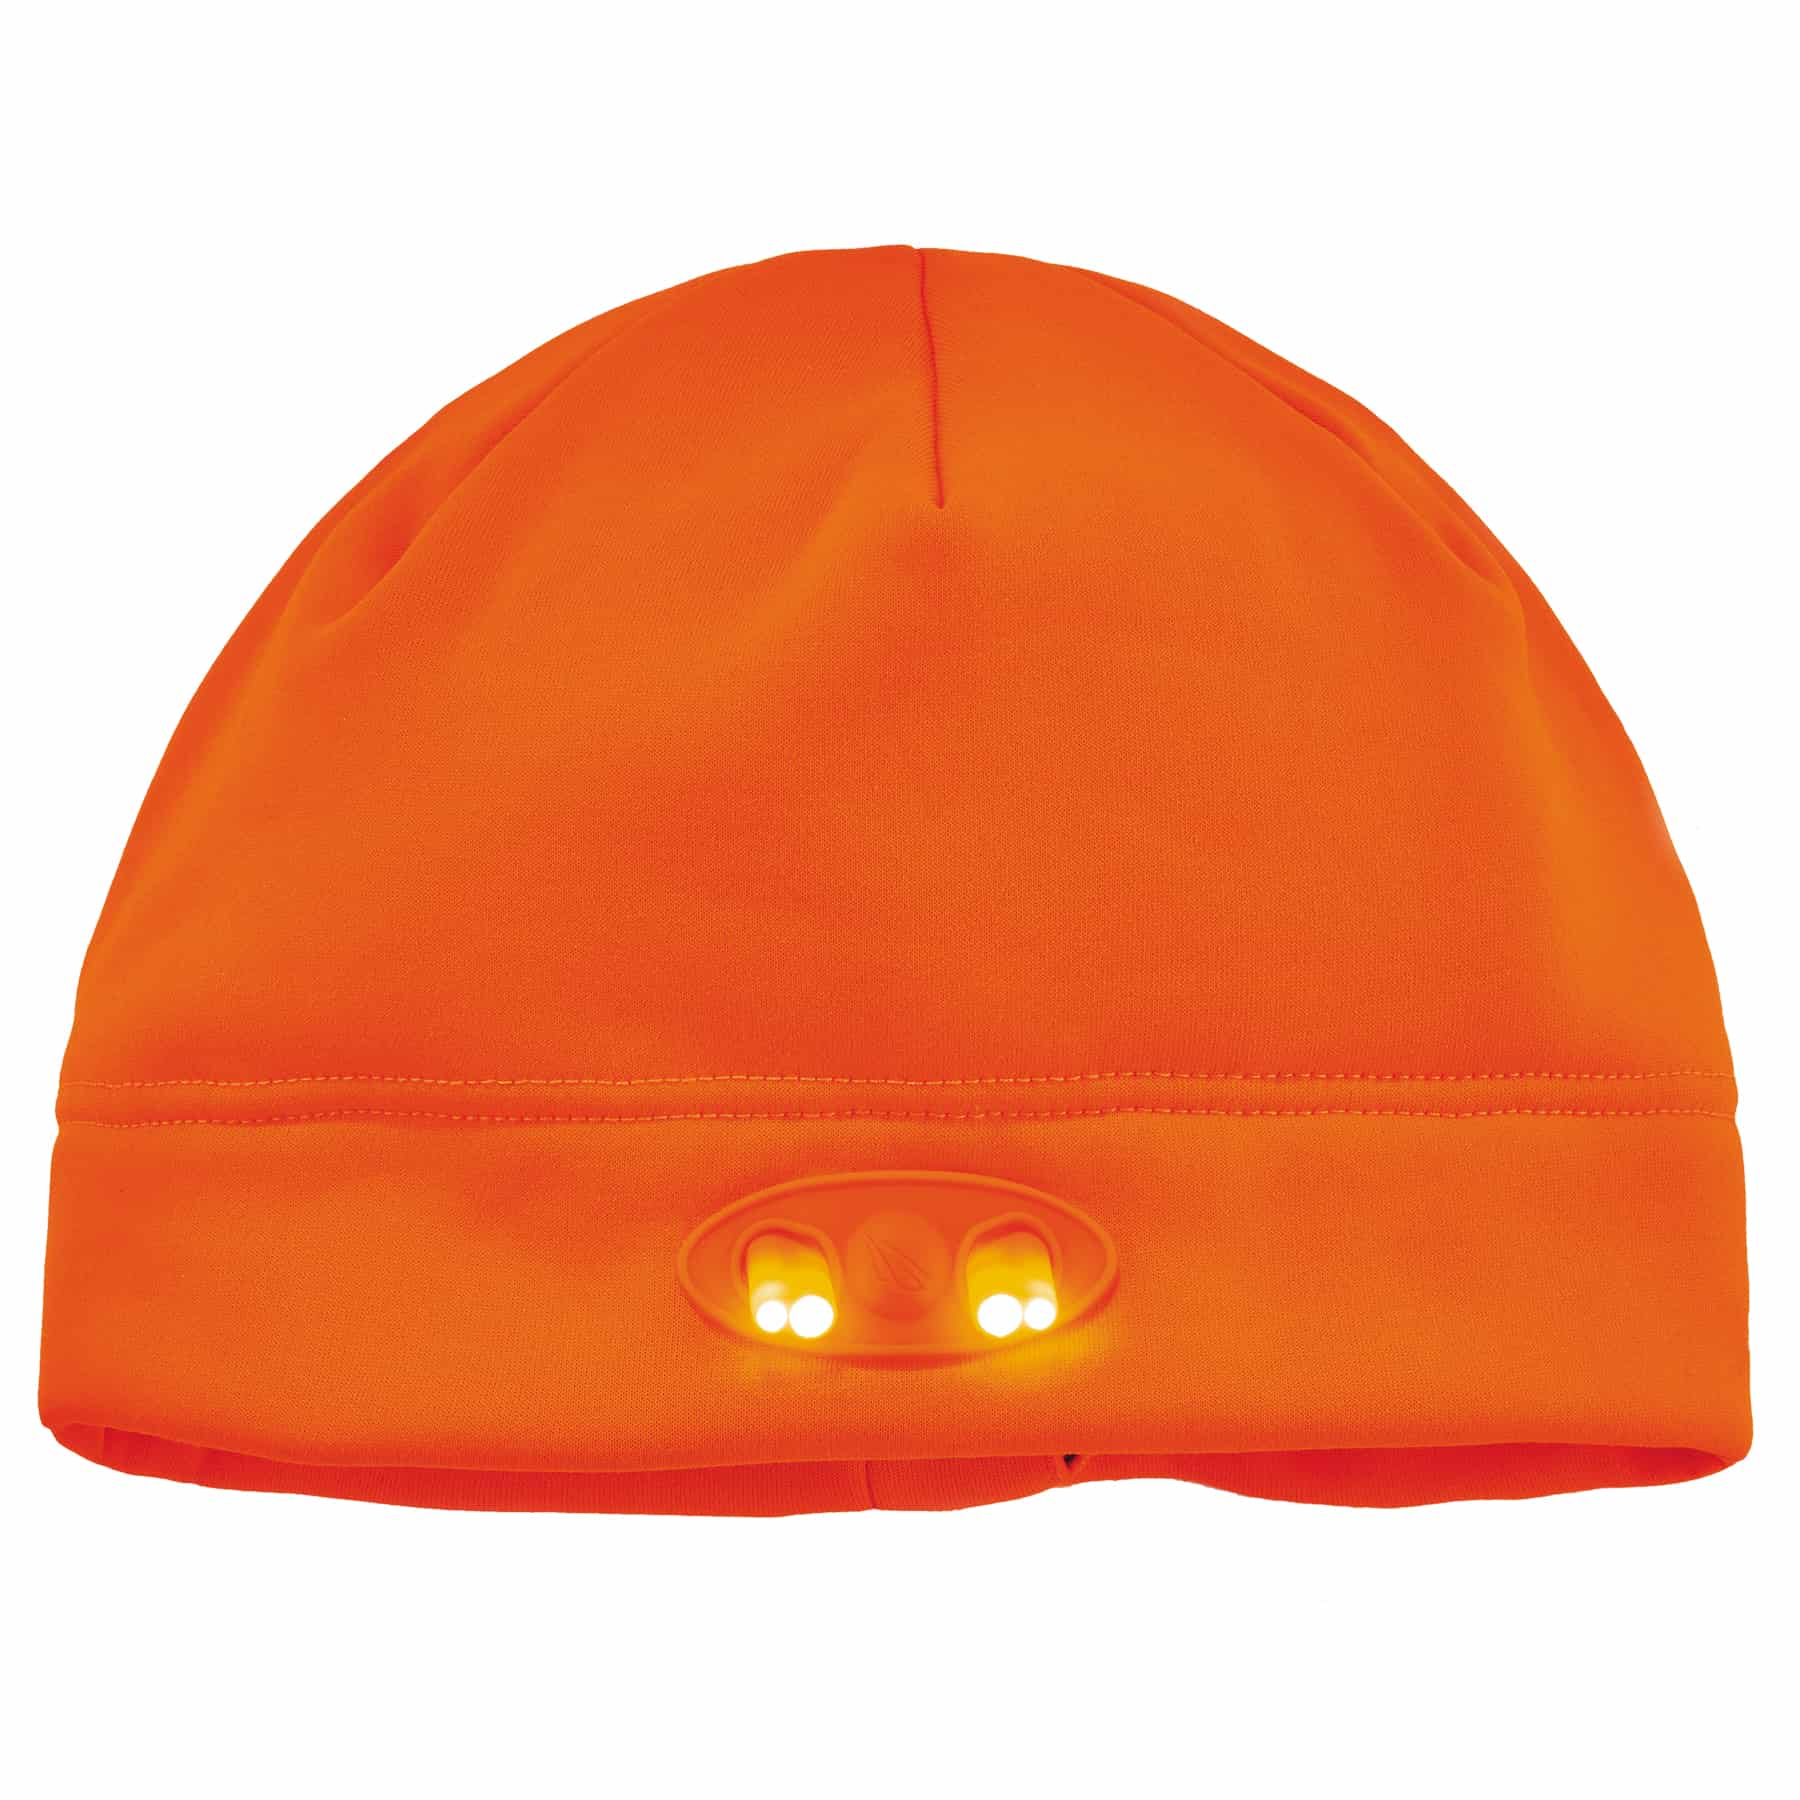 N-Ferno® 16803 6804 Skull Cap Beanie Hat with LED Lights, Compression Fit, Fleece, Black